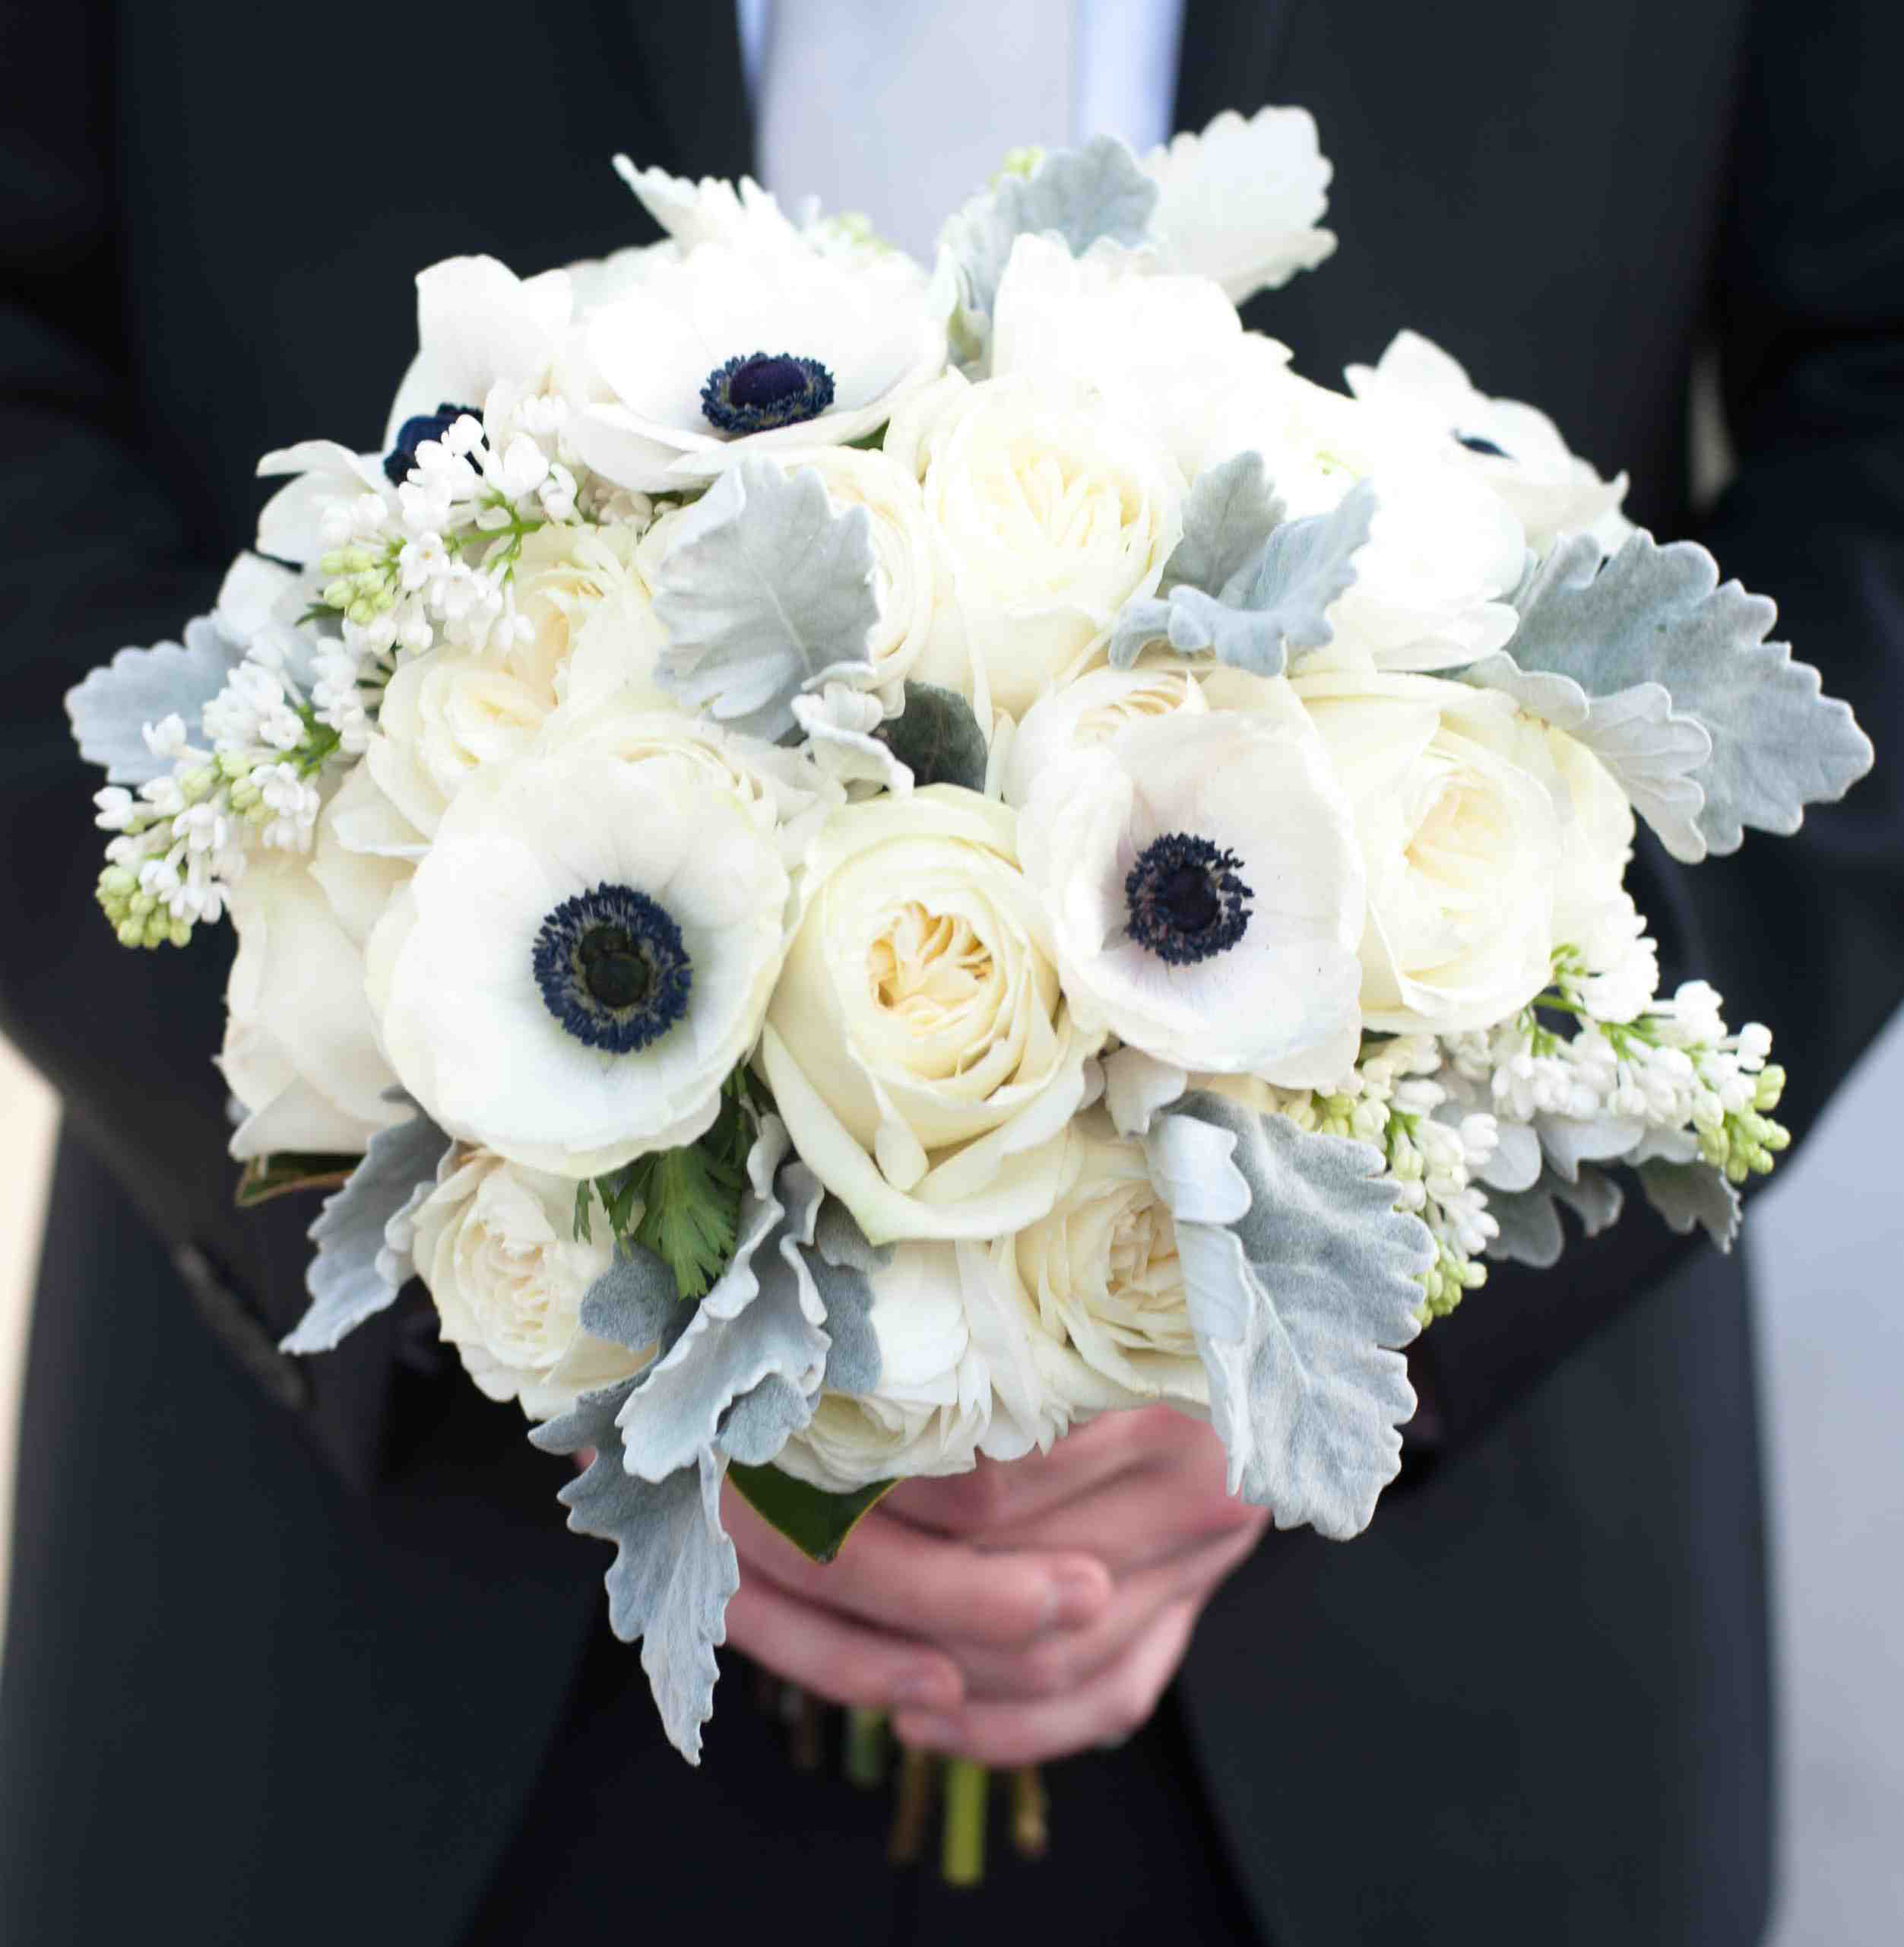 Wedding Flower Bouquets Ideas: Wedding Ideas: 15 Bouquet Ideas For A Winter Ceremony